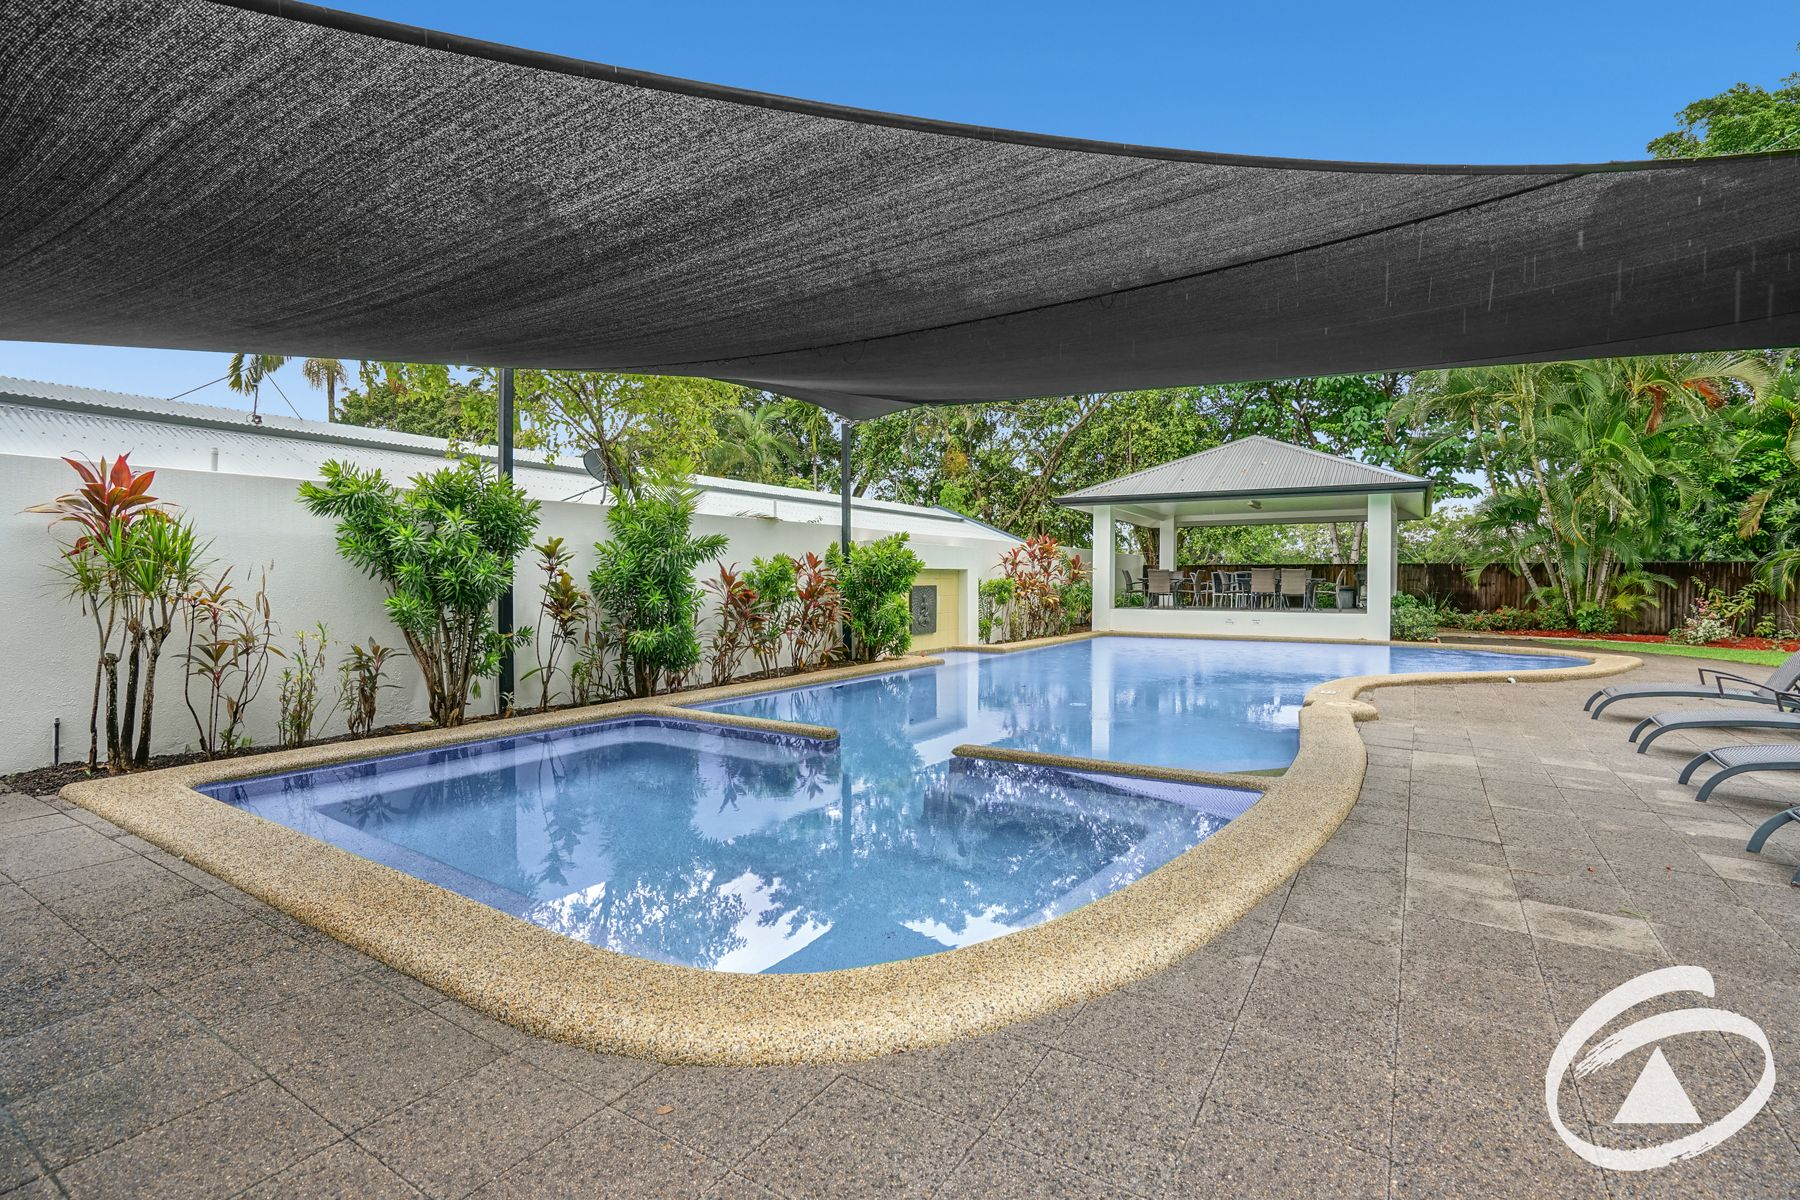 17/164-170 Spence Street, Bungalow, QLD 4870